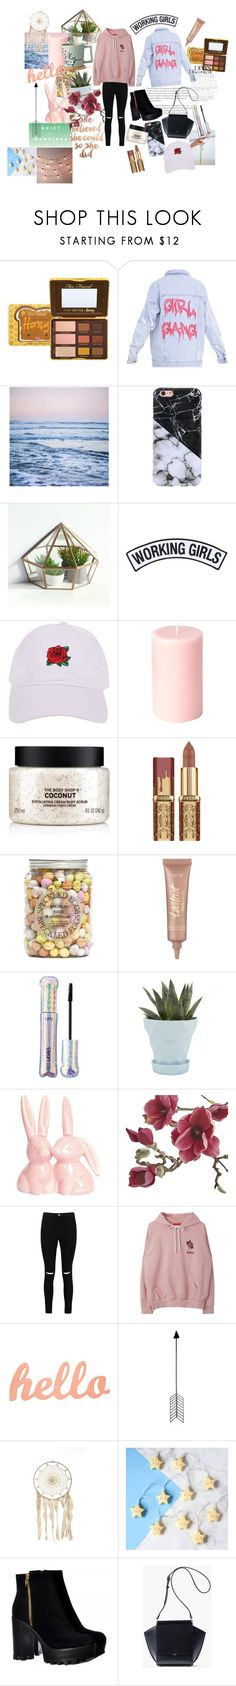 """""""🌹"""" by fashioninmyindustry ❤ liked on Polyvore featuring Working Girls, Armitage Avenue, The Body Shop, tarte, Chive, Crate and Barrel, Boohoo, Bend, The White Company and Berylune"""